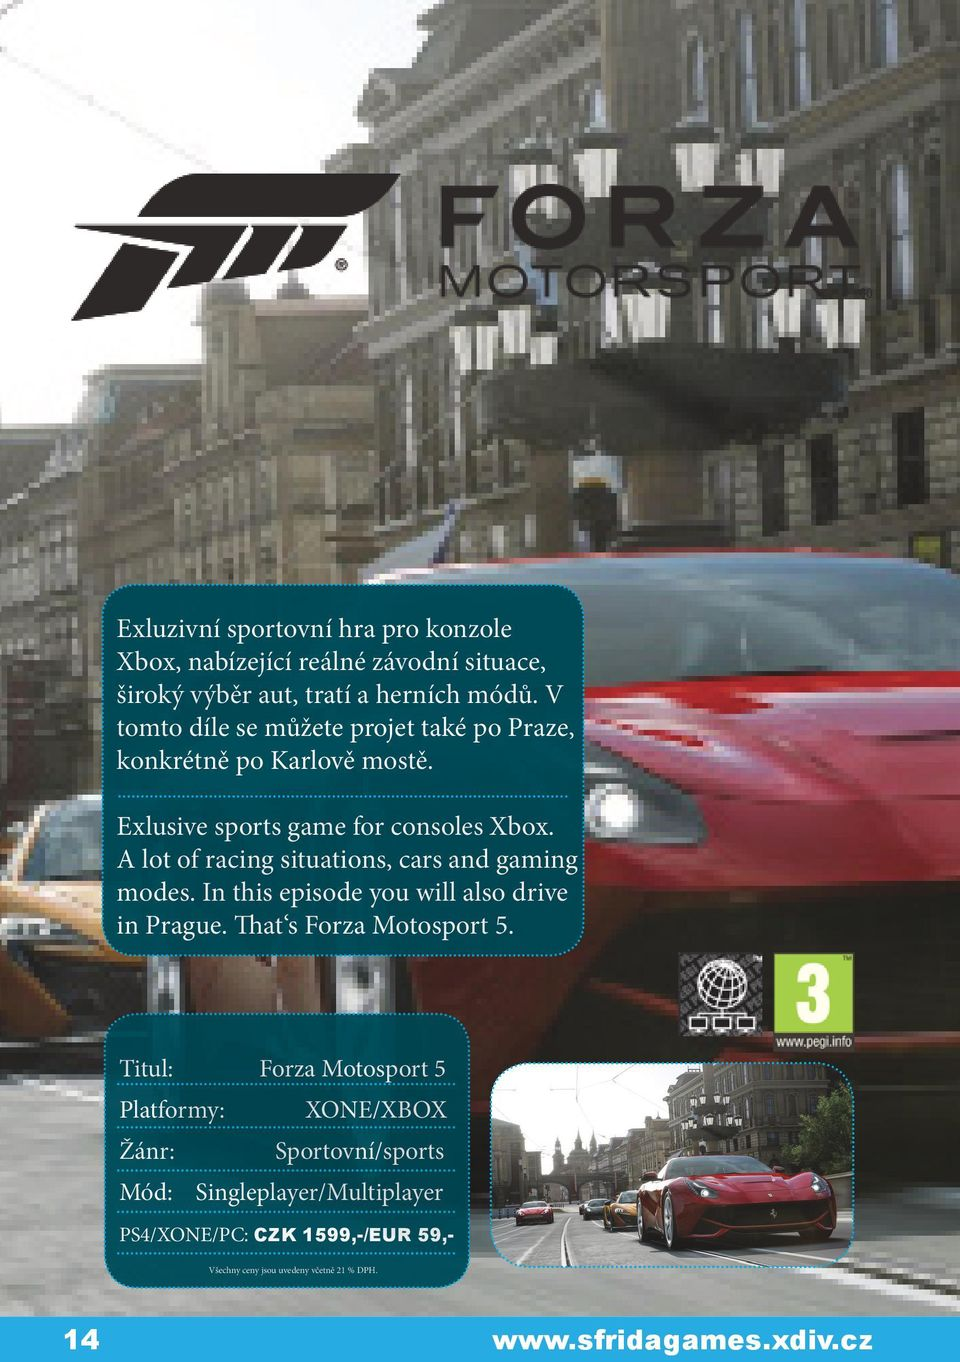 A lot of racing situations, cars and gaming modes. In this episode you will also drive in Prague. That s Forza Motosport 5.